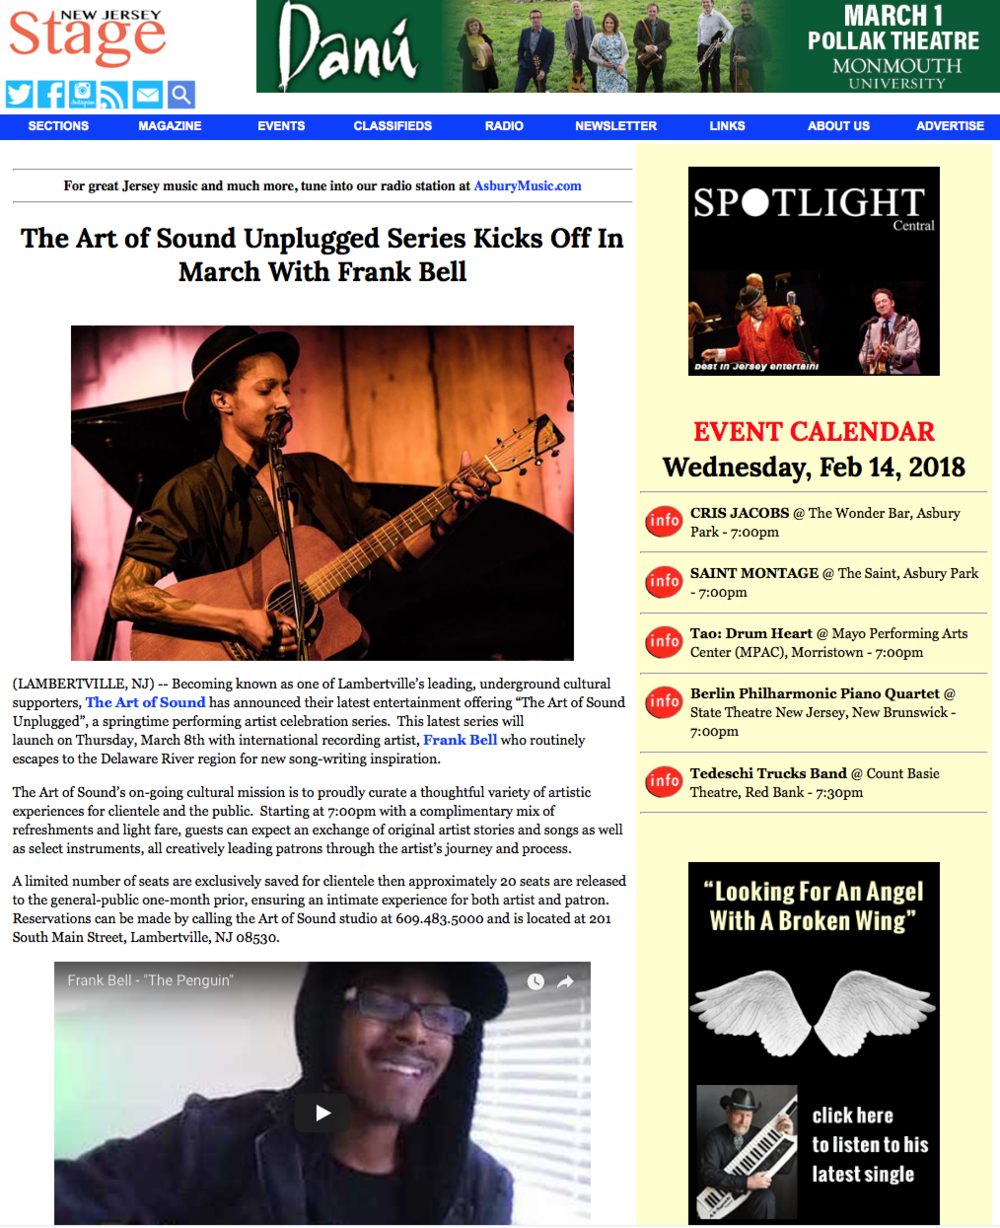 NJ Stage Magazine - Click to read the story